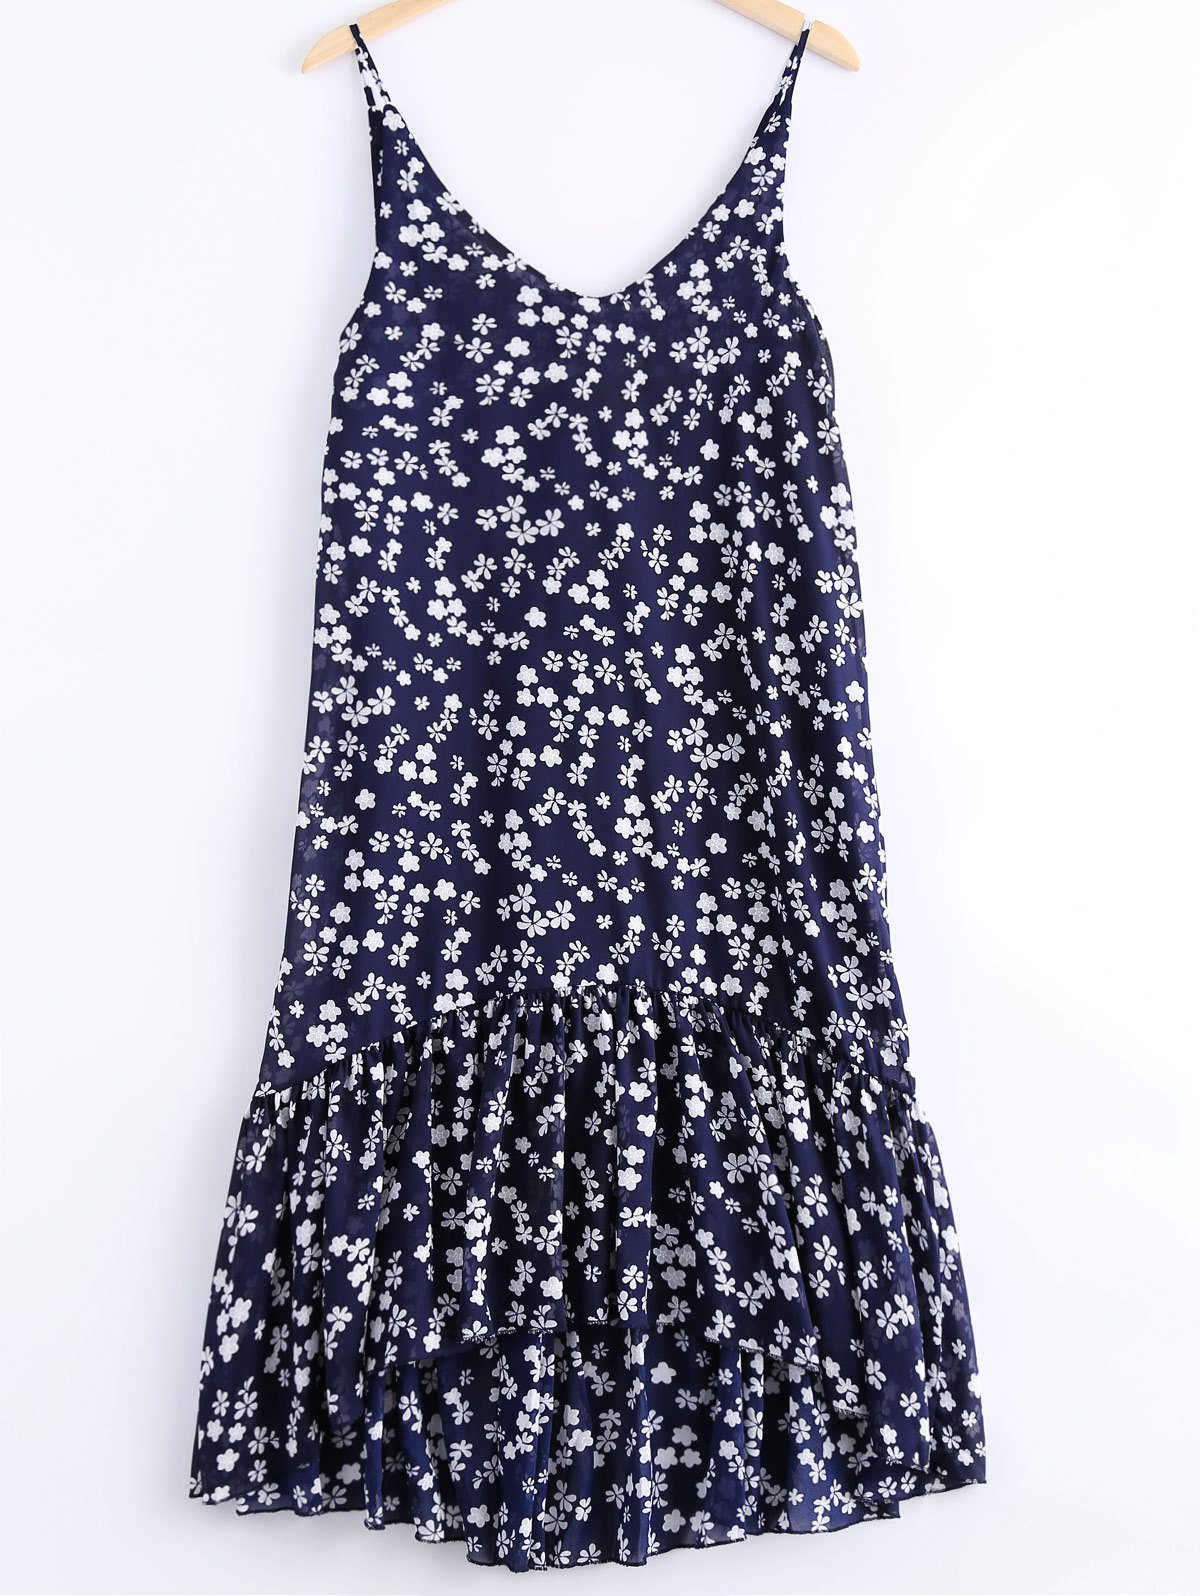 Fashionable Printing V-Neck Spaghetti Strap Flounce Dress For Women - DEEP BLUE ONE SIZE(FIT SIZE XS TO M)